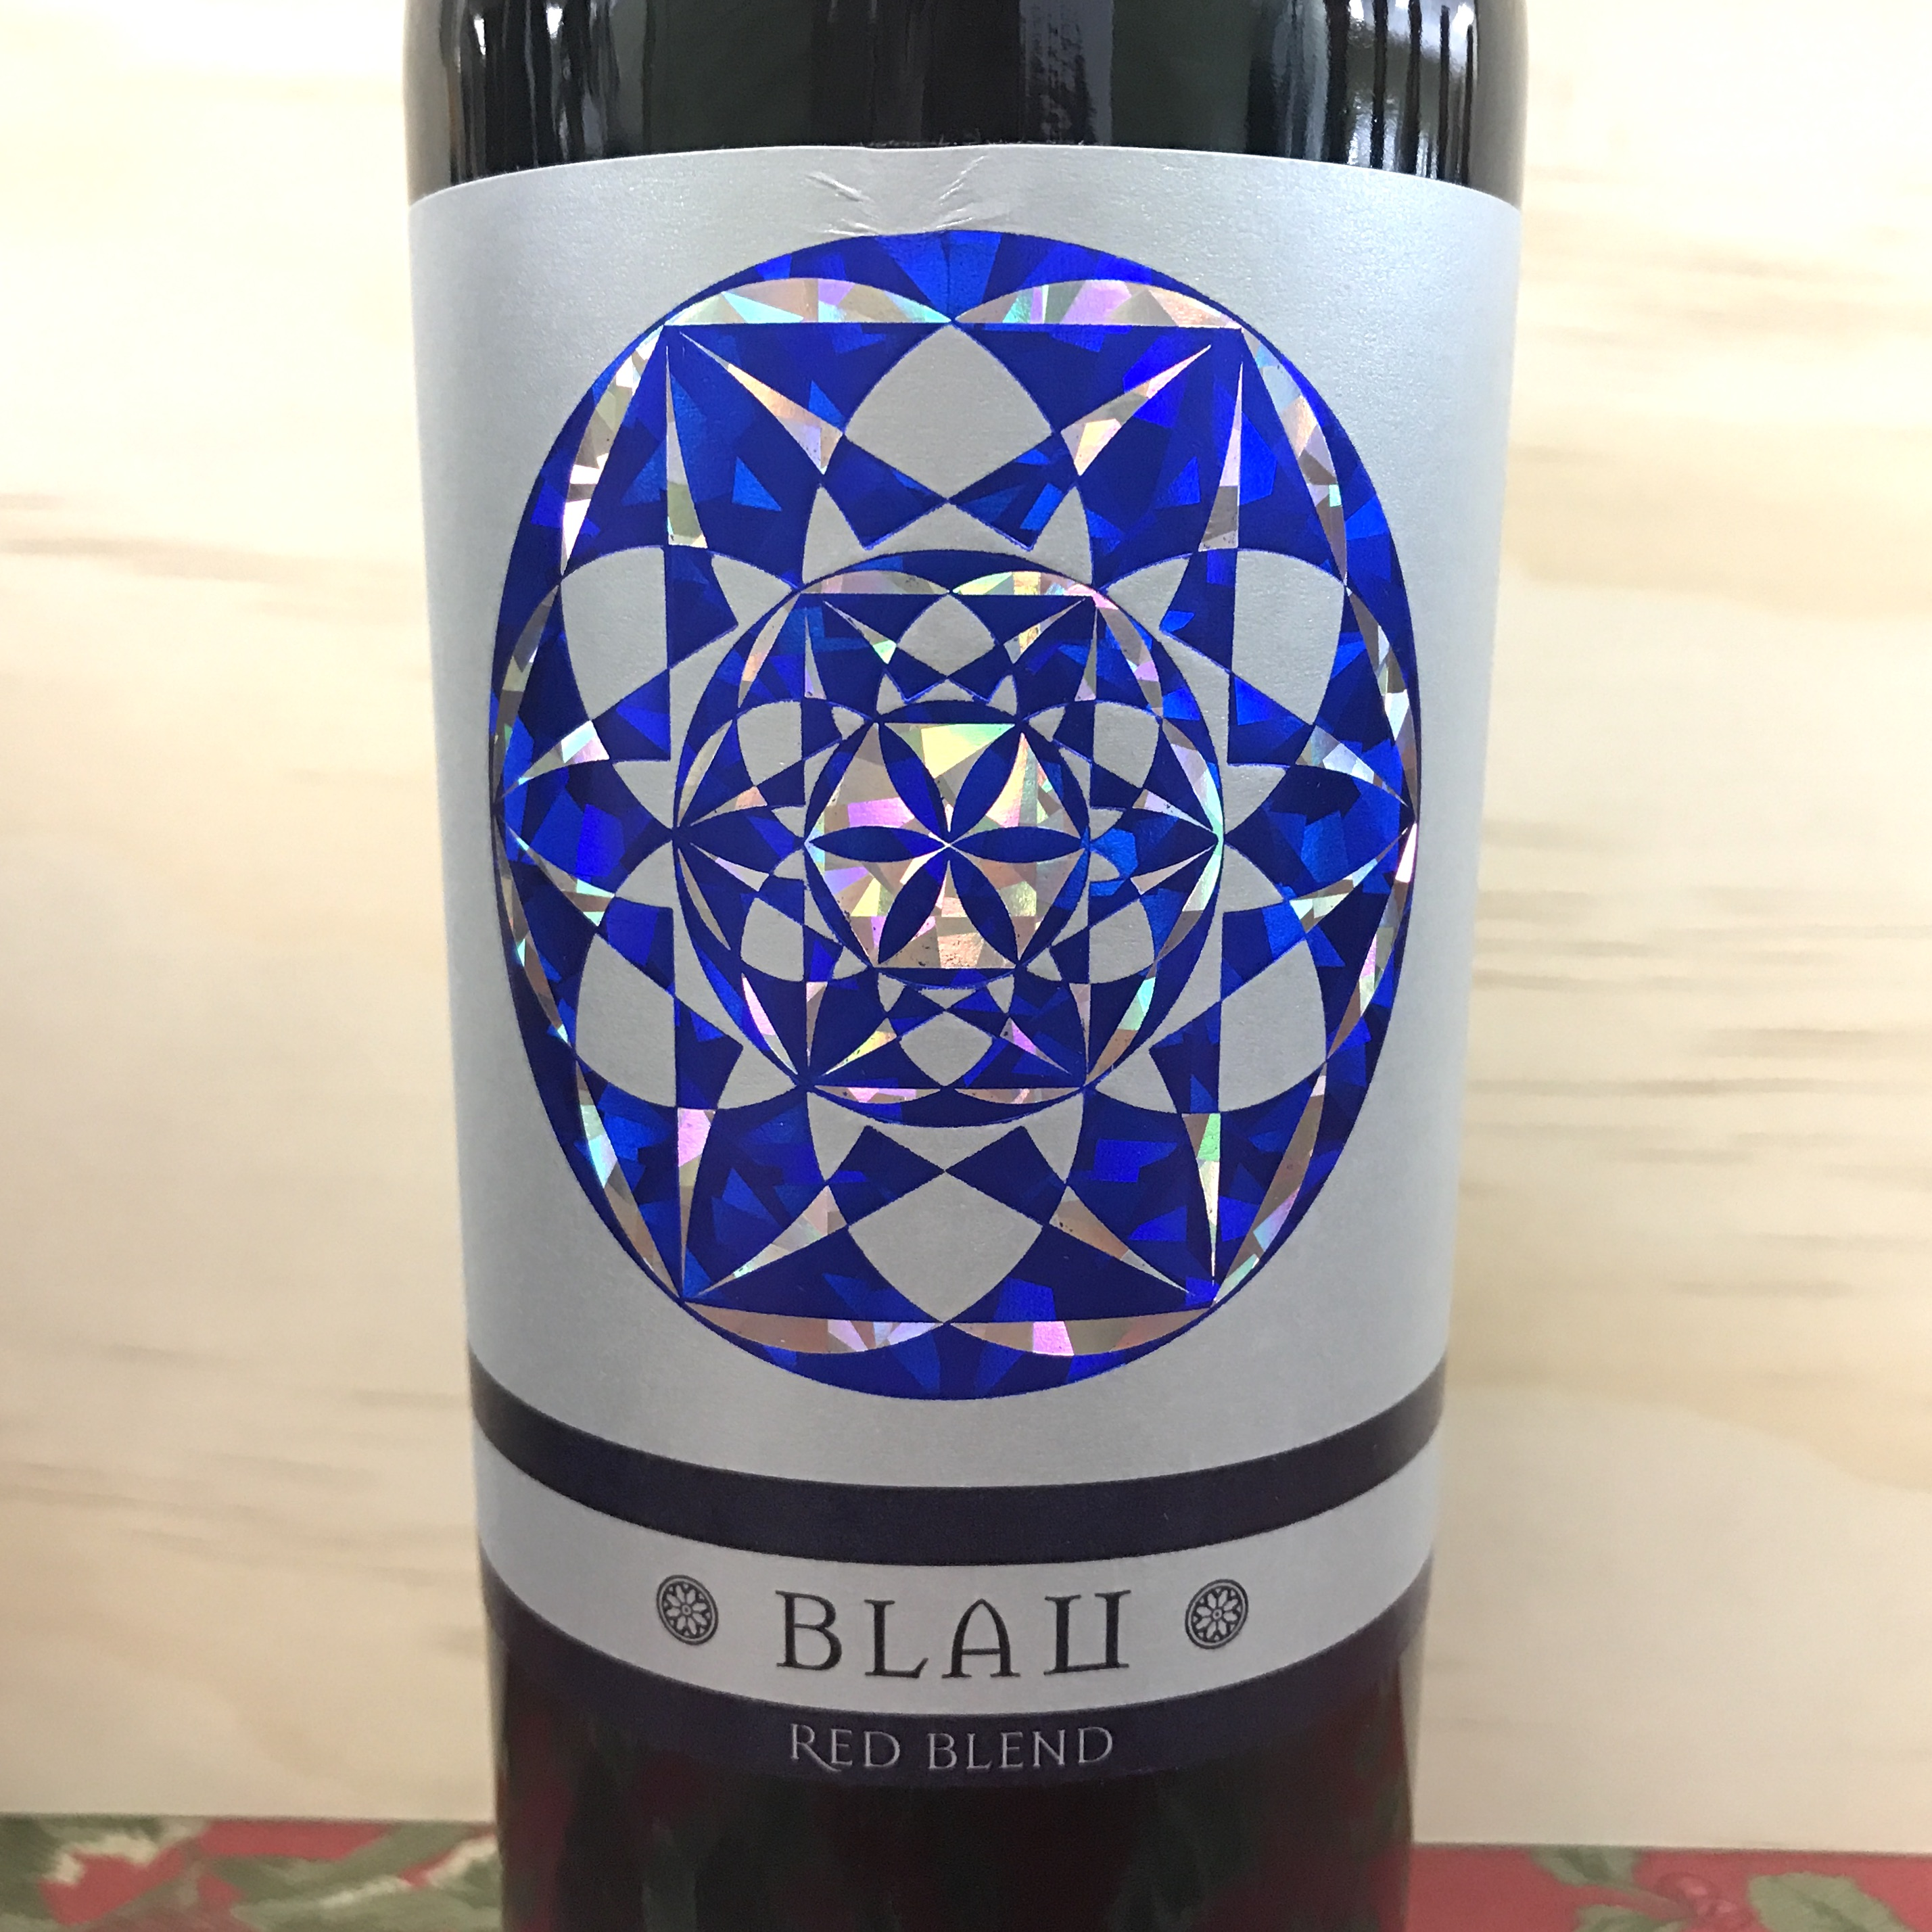 Can Blau Montsant Red Blend